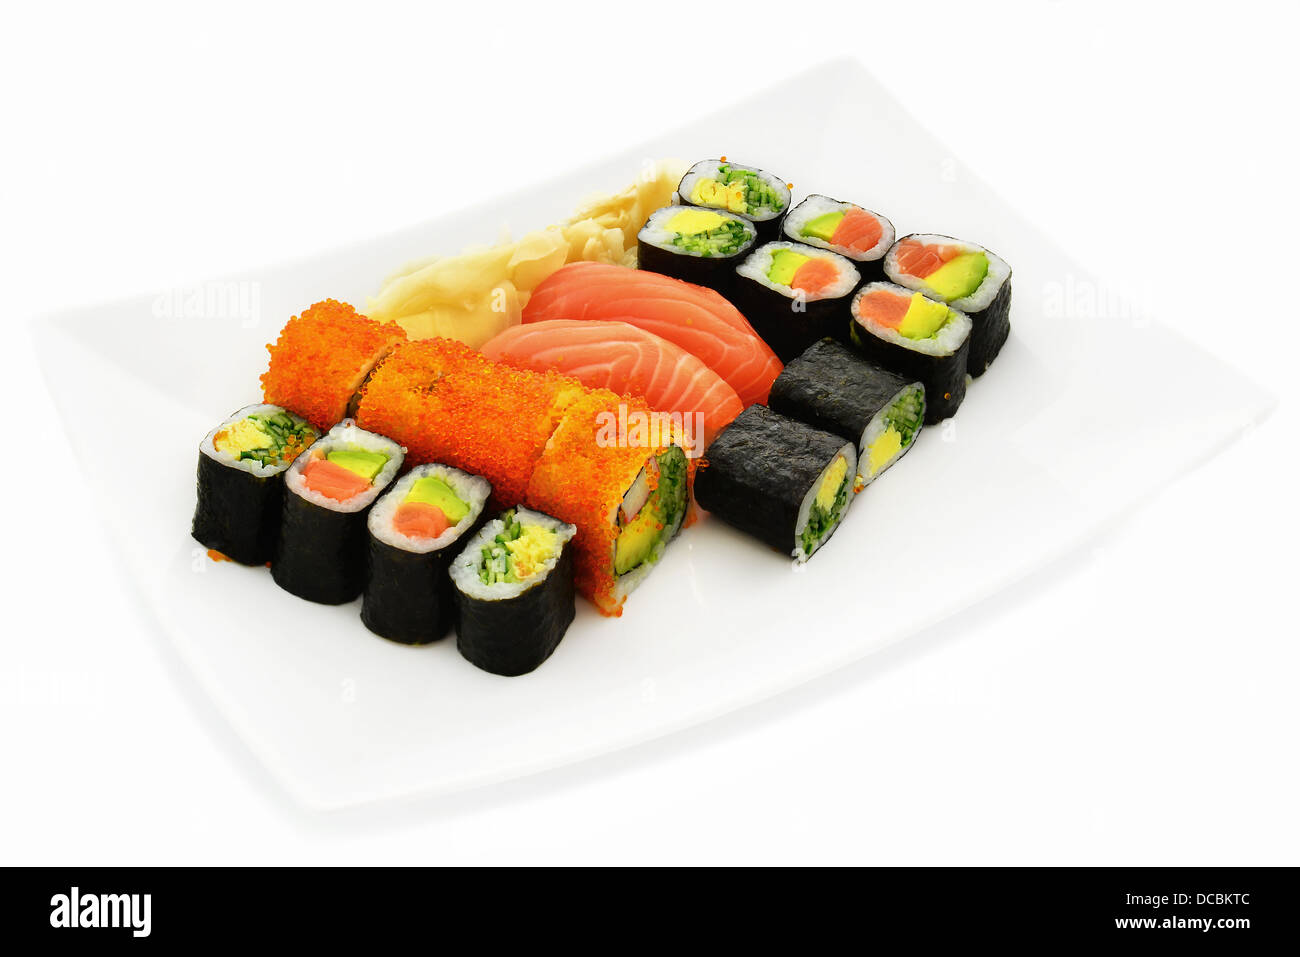 Sushi with fish, caviar, avocado, egg and cucumber. - Stock Image